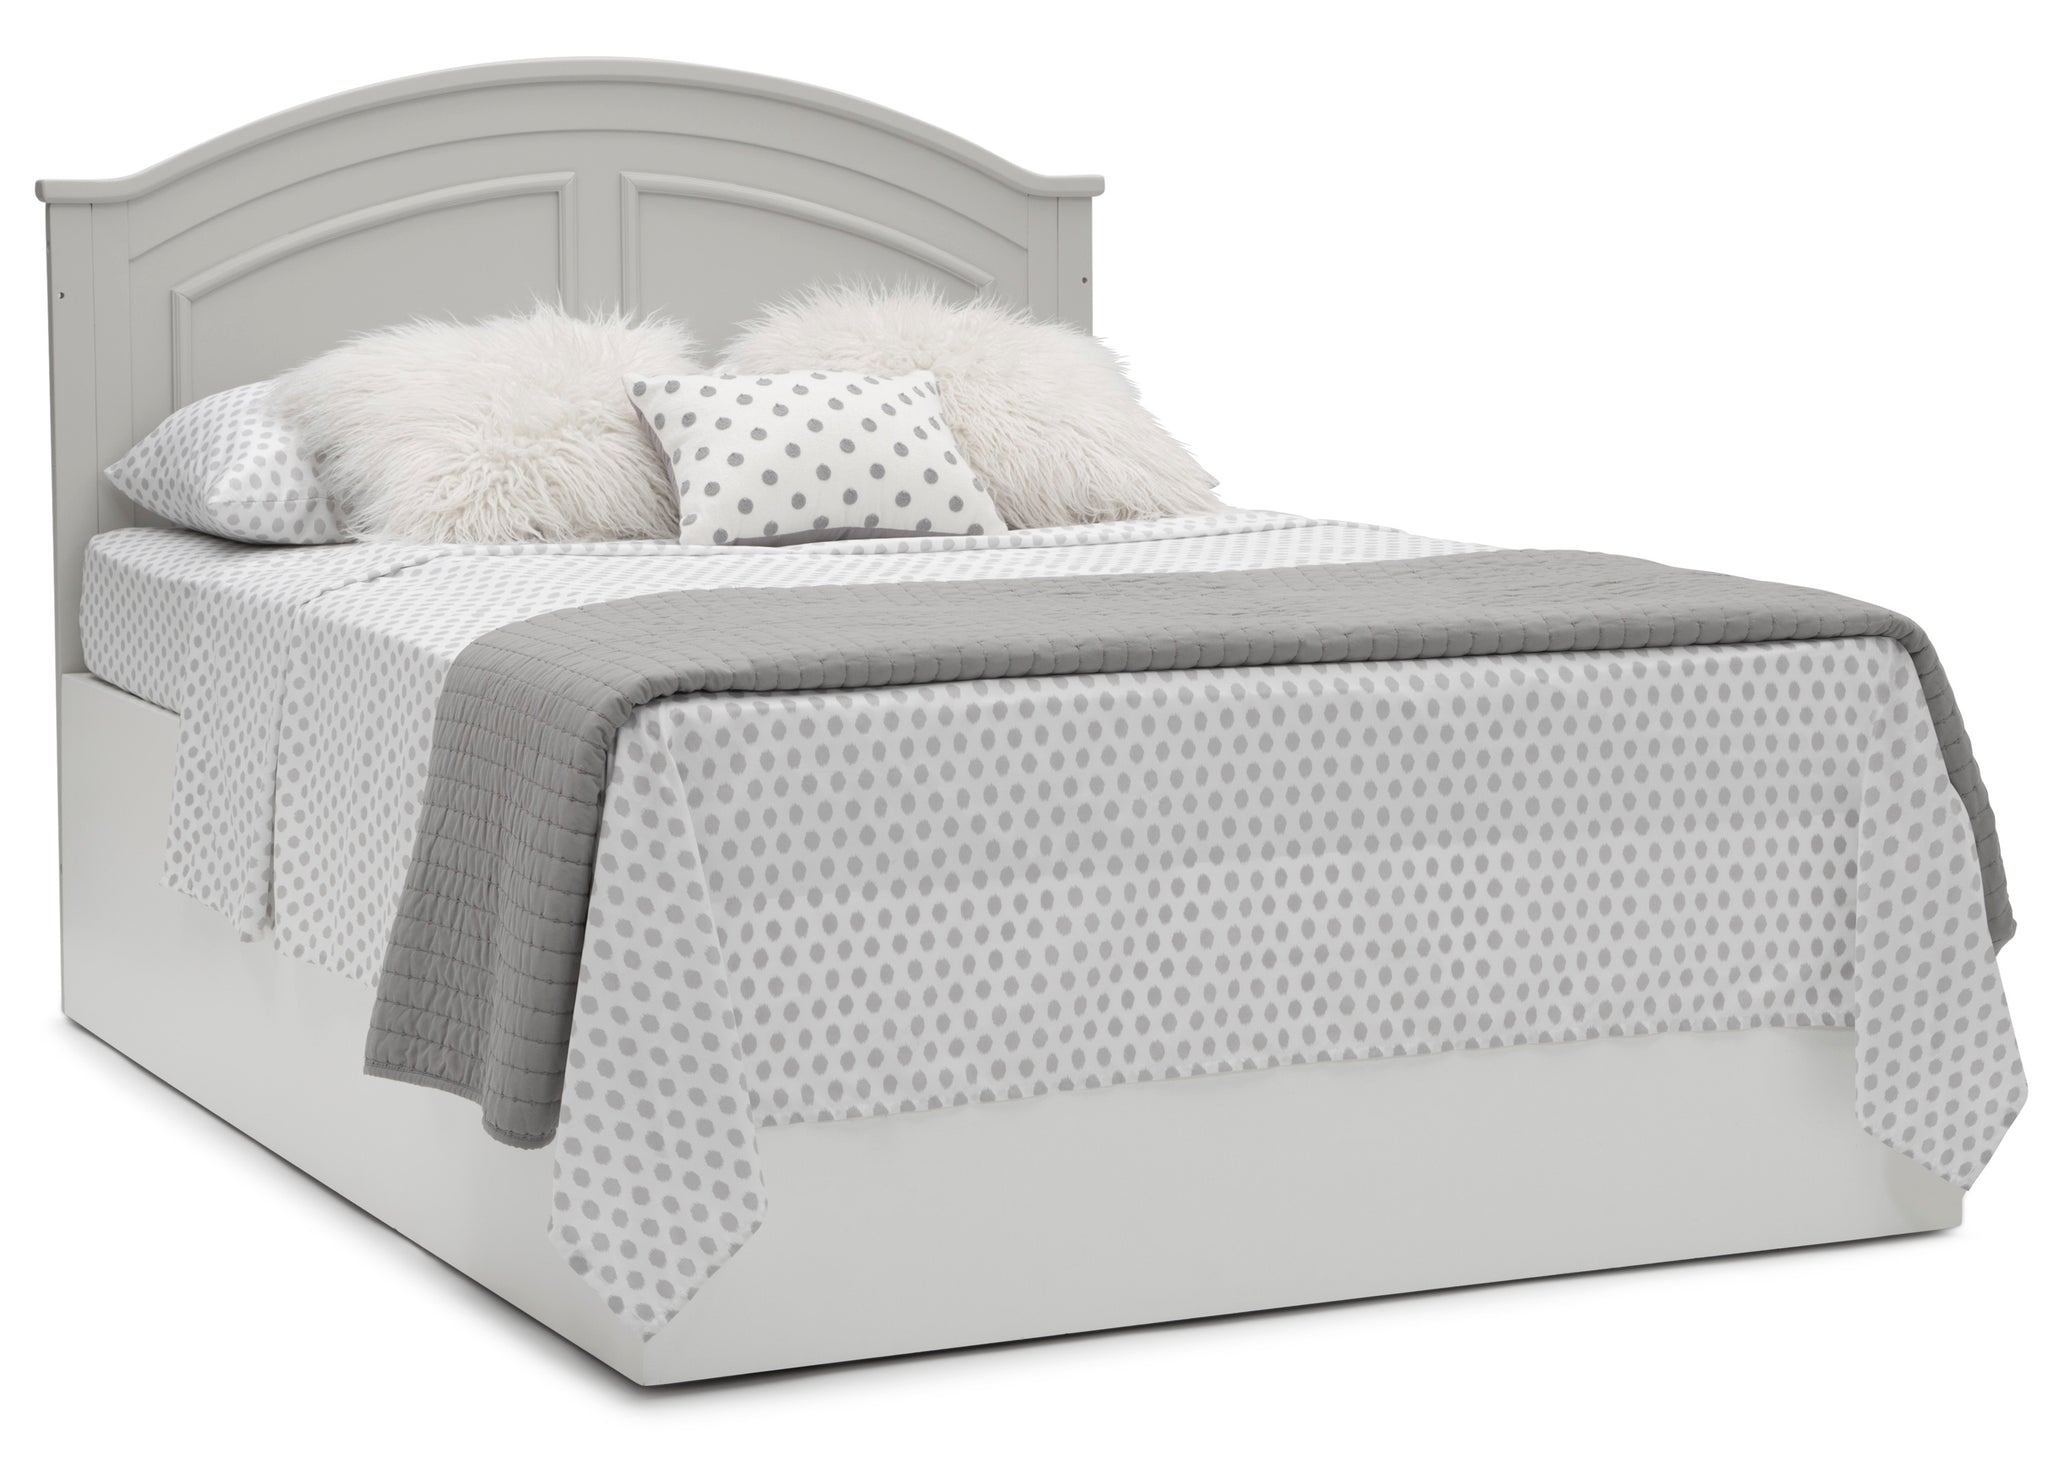 Delta Children Moonstruck Grey (1351) Perry 6-in-1 Convertible Crib, Right Full Bed with Headboard Silo View